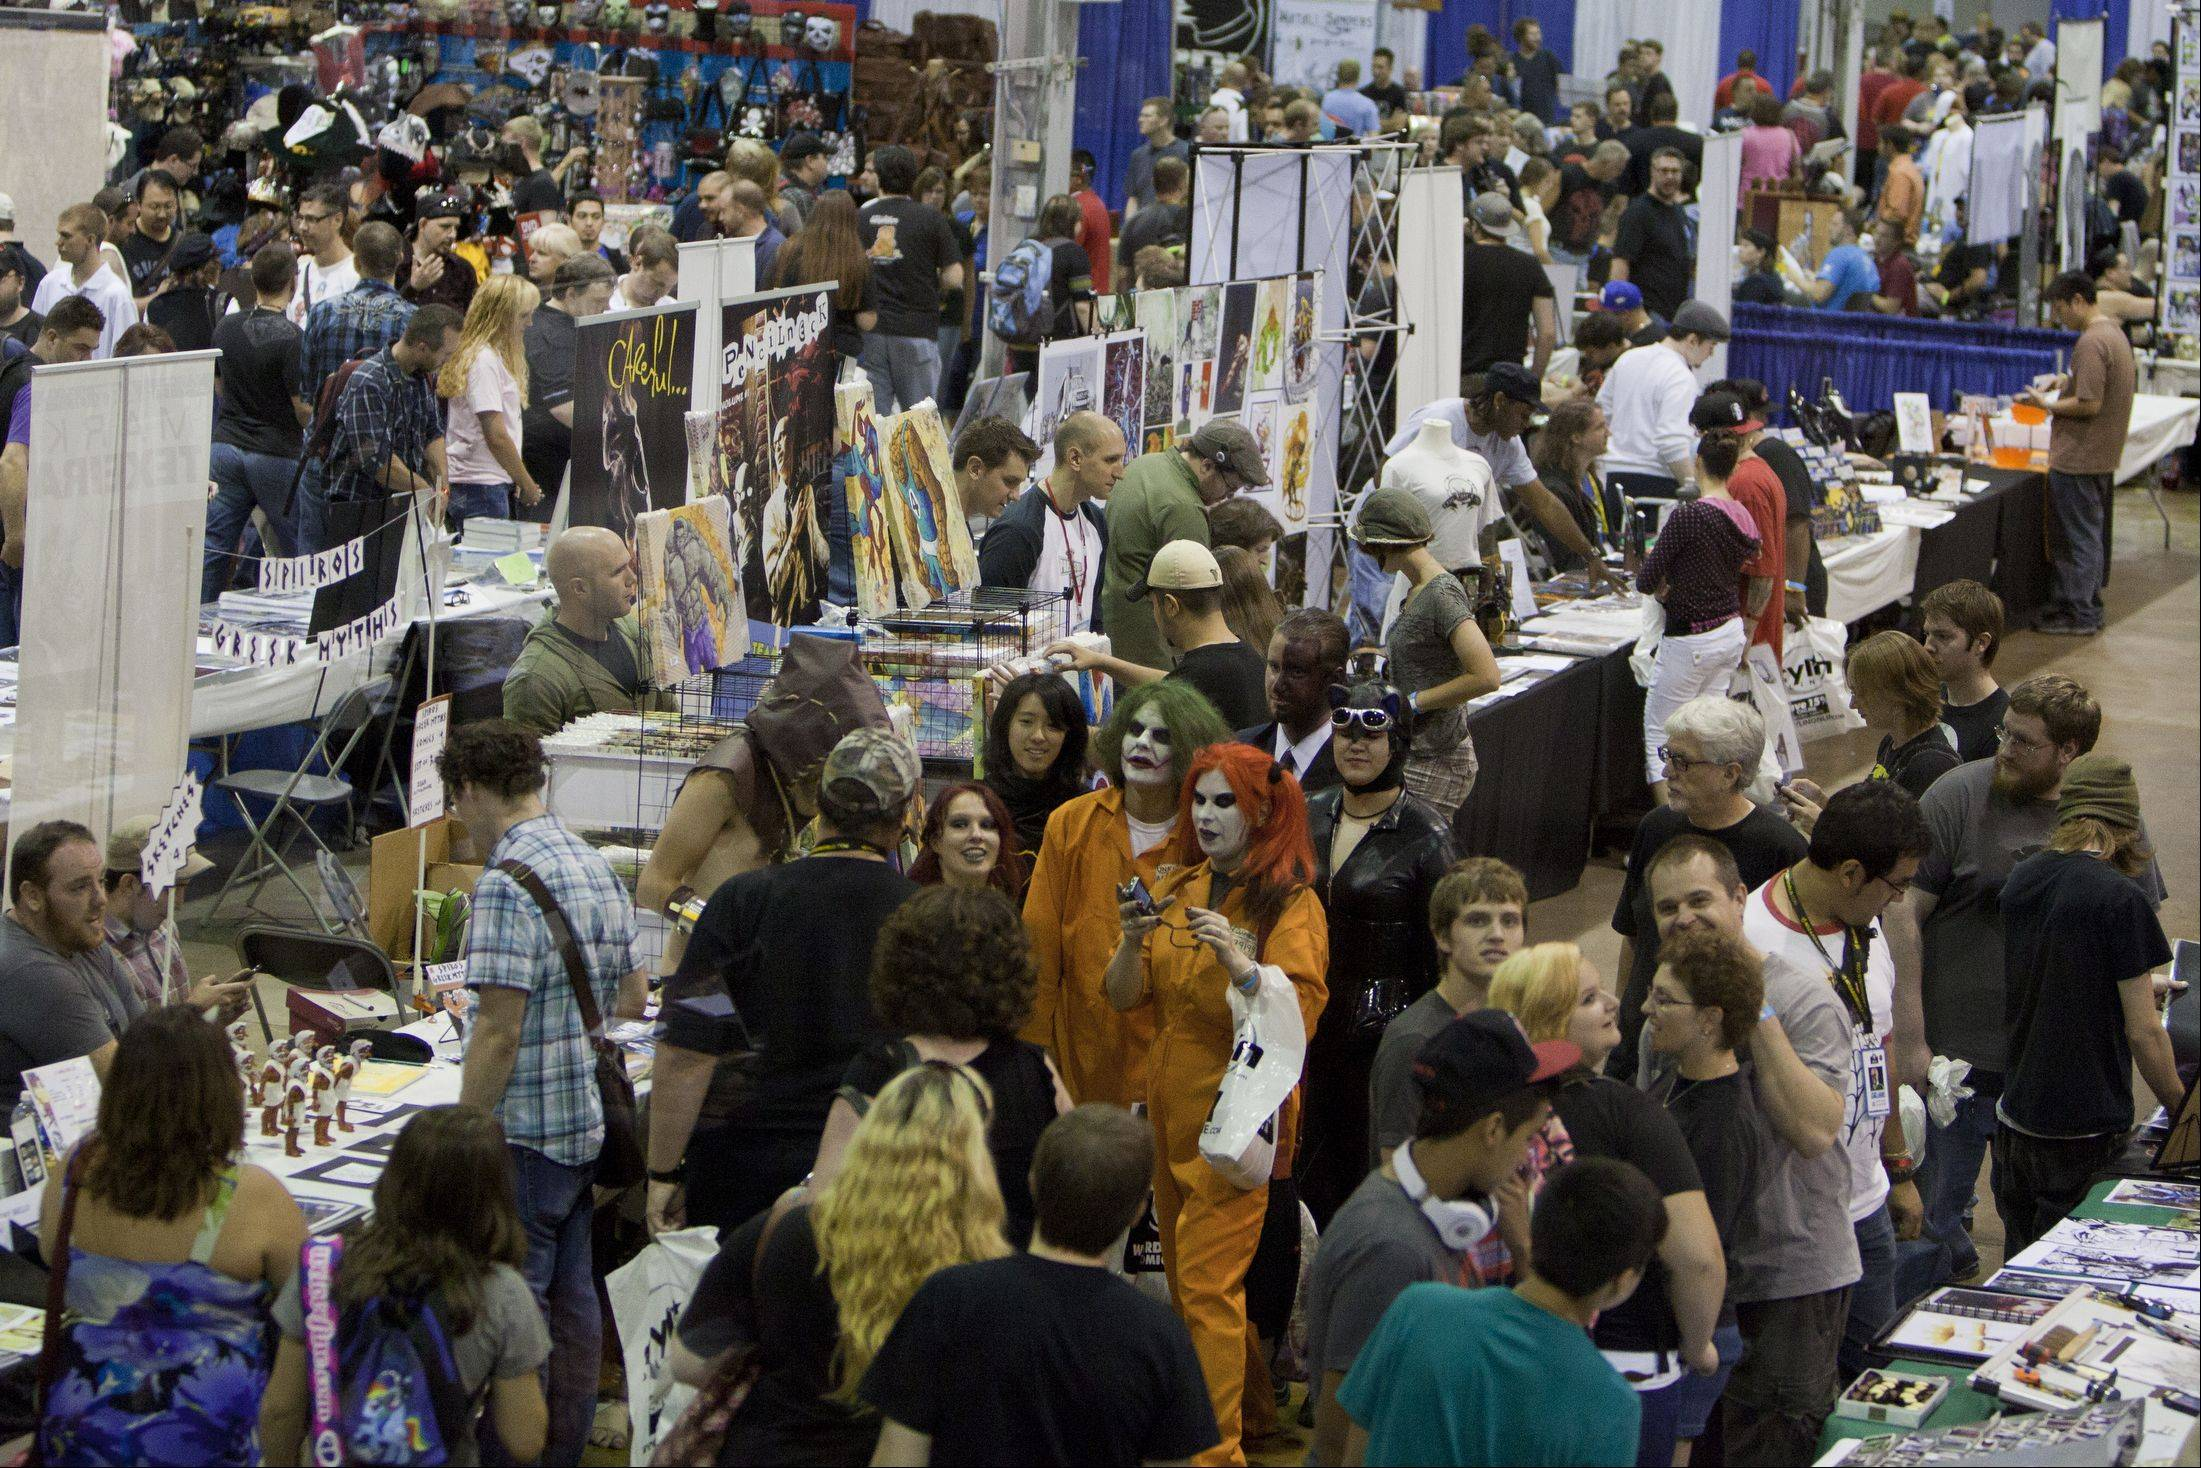 Thousands filled the Donald E. Stephens Convention Center during last year's Chicago Comic Con. Organizers expect this year's event to be just as busy.